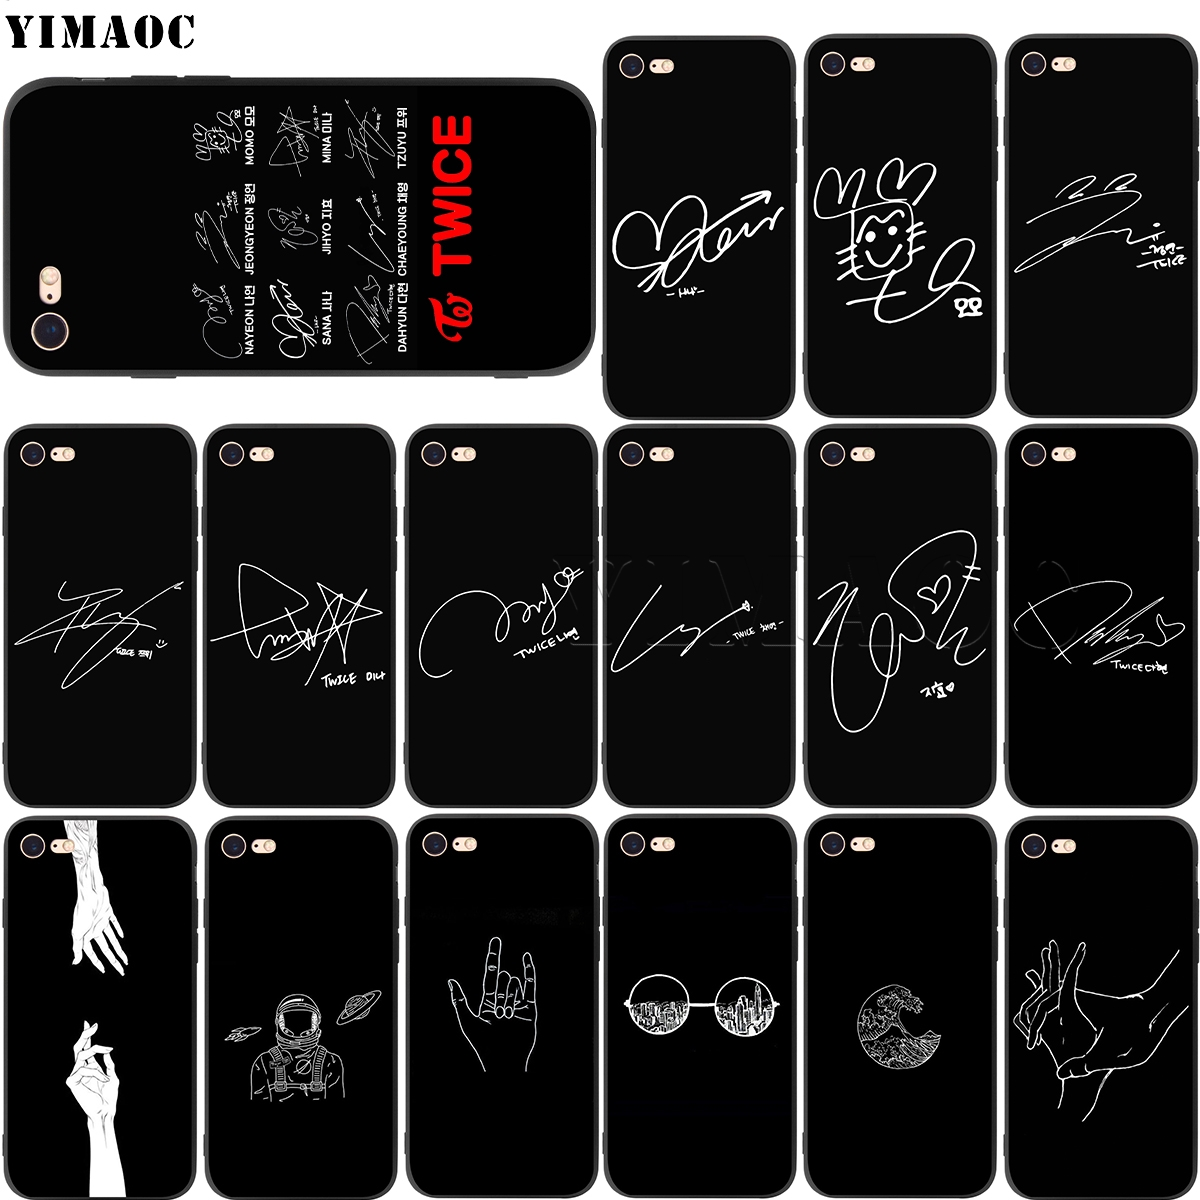 Мягкий силиконовый чехол YIMAOC Twice Signature для iPhone 11 Pro XS Max XR X 8 7 6 6S Plus 5 5S se image